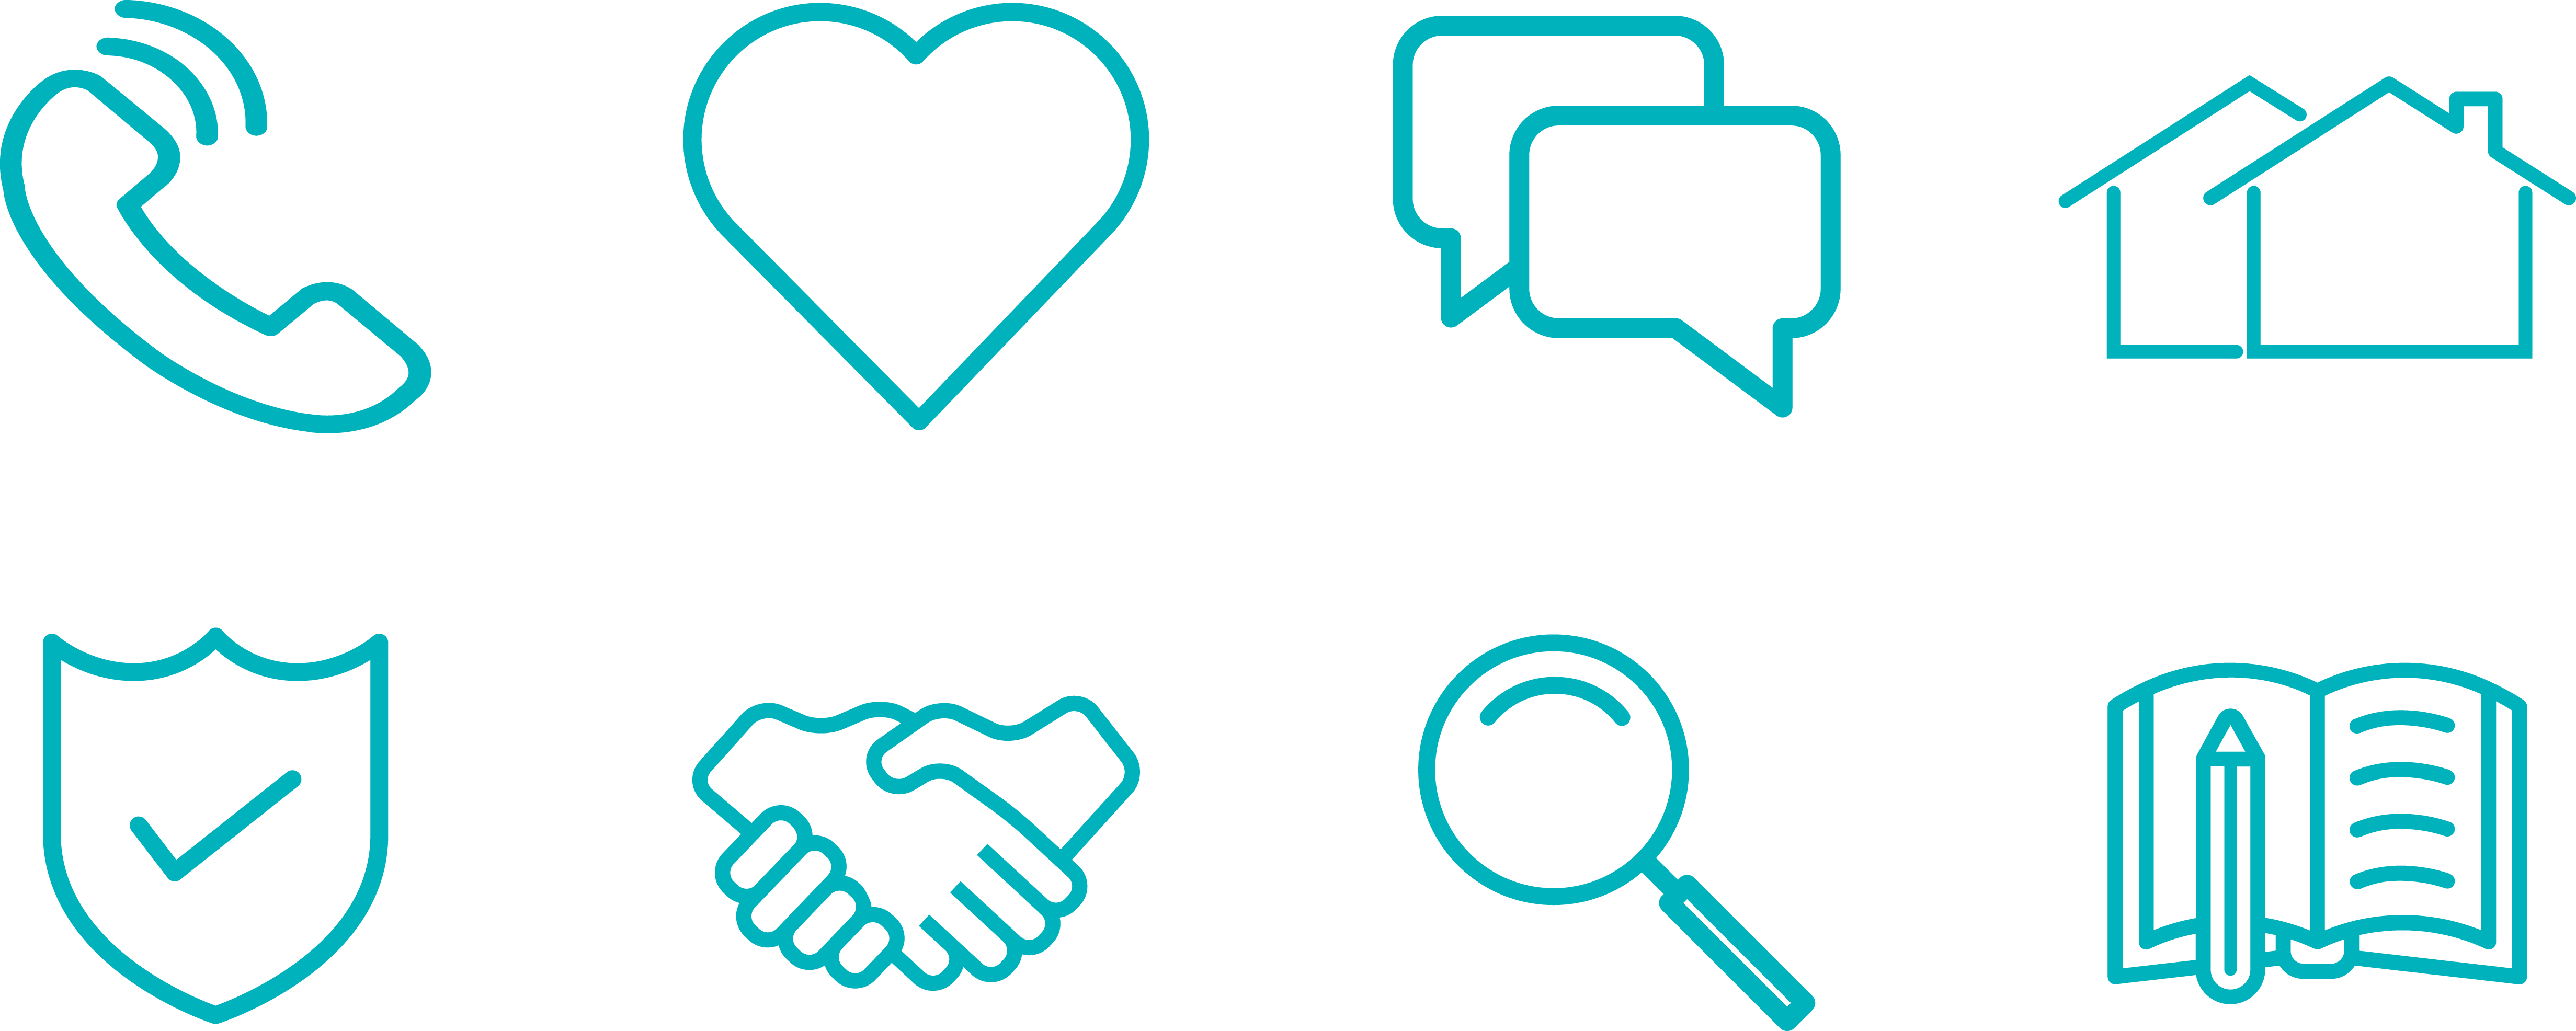 set of eight outlined icons showing a phone, heart, speech bubbles, houses, shield with a tick, shaking hands, magnifying glass and book with pencil